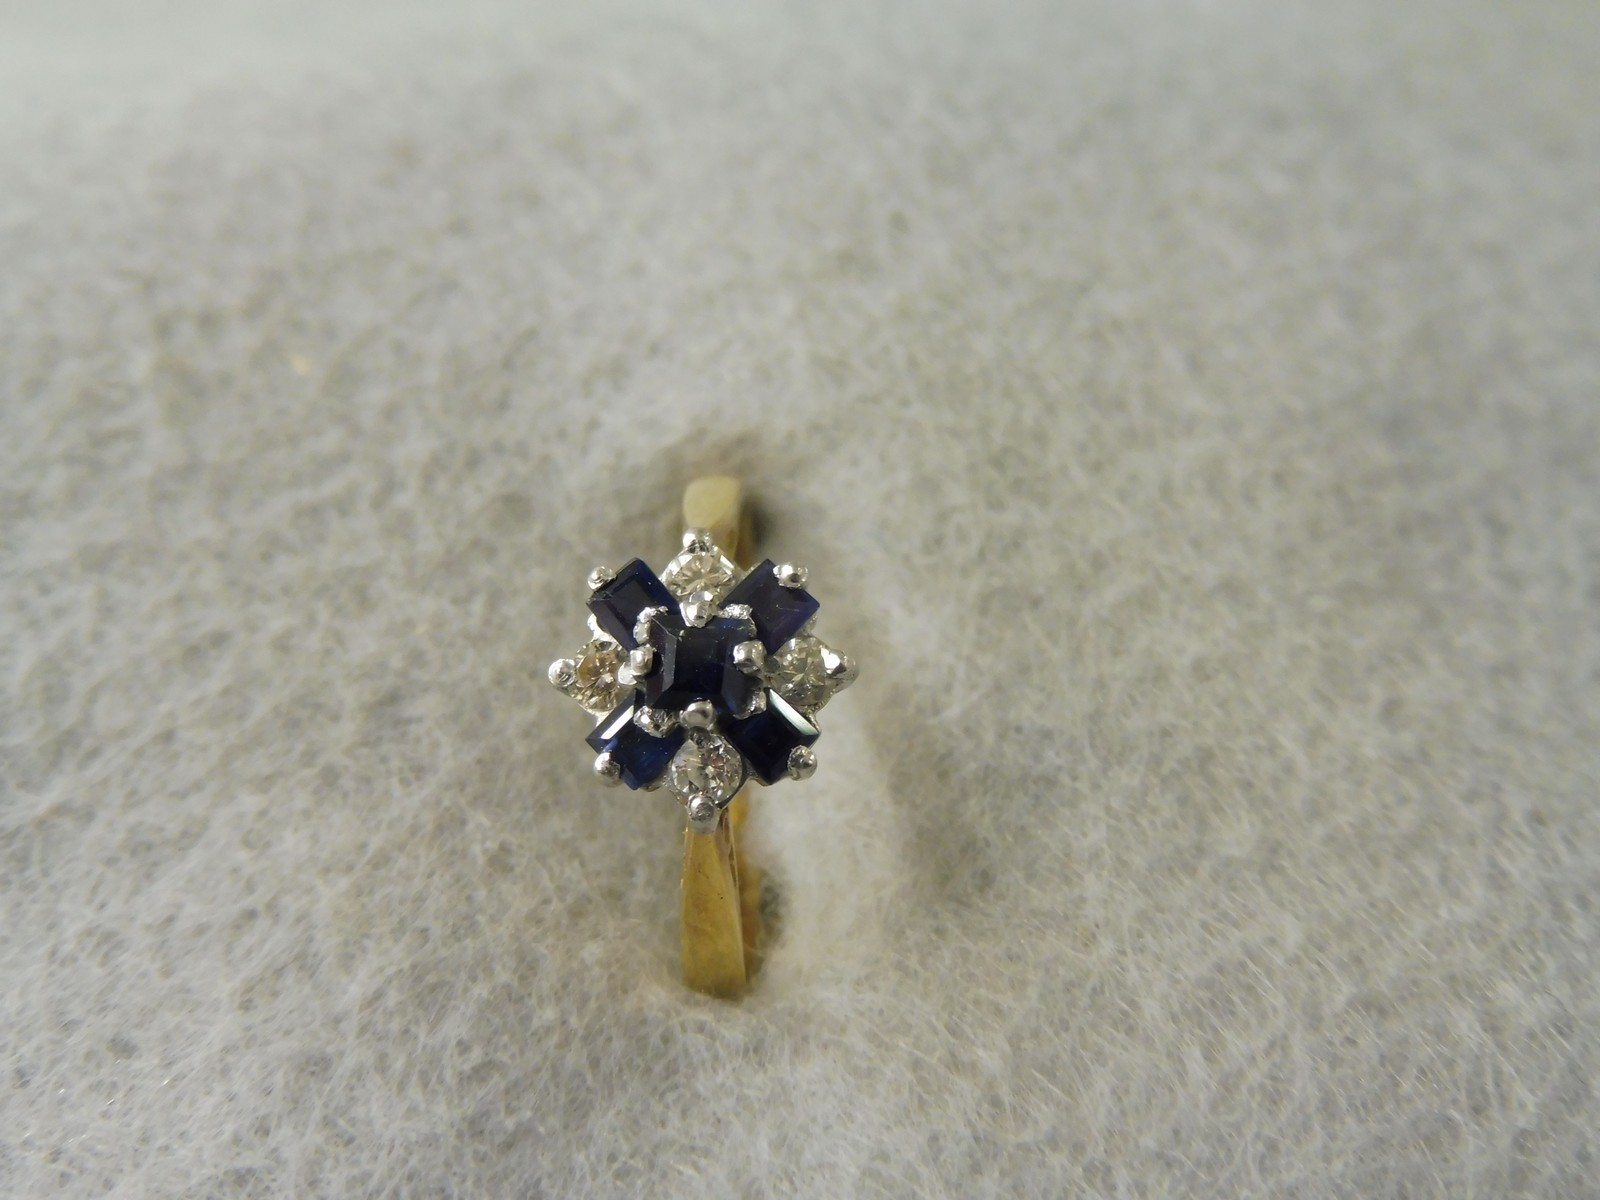 Lot 10 - A diamond and sapphire ring in platinum and 18ct gold.